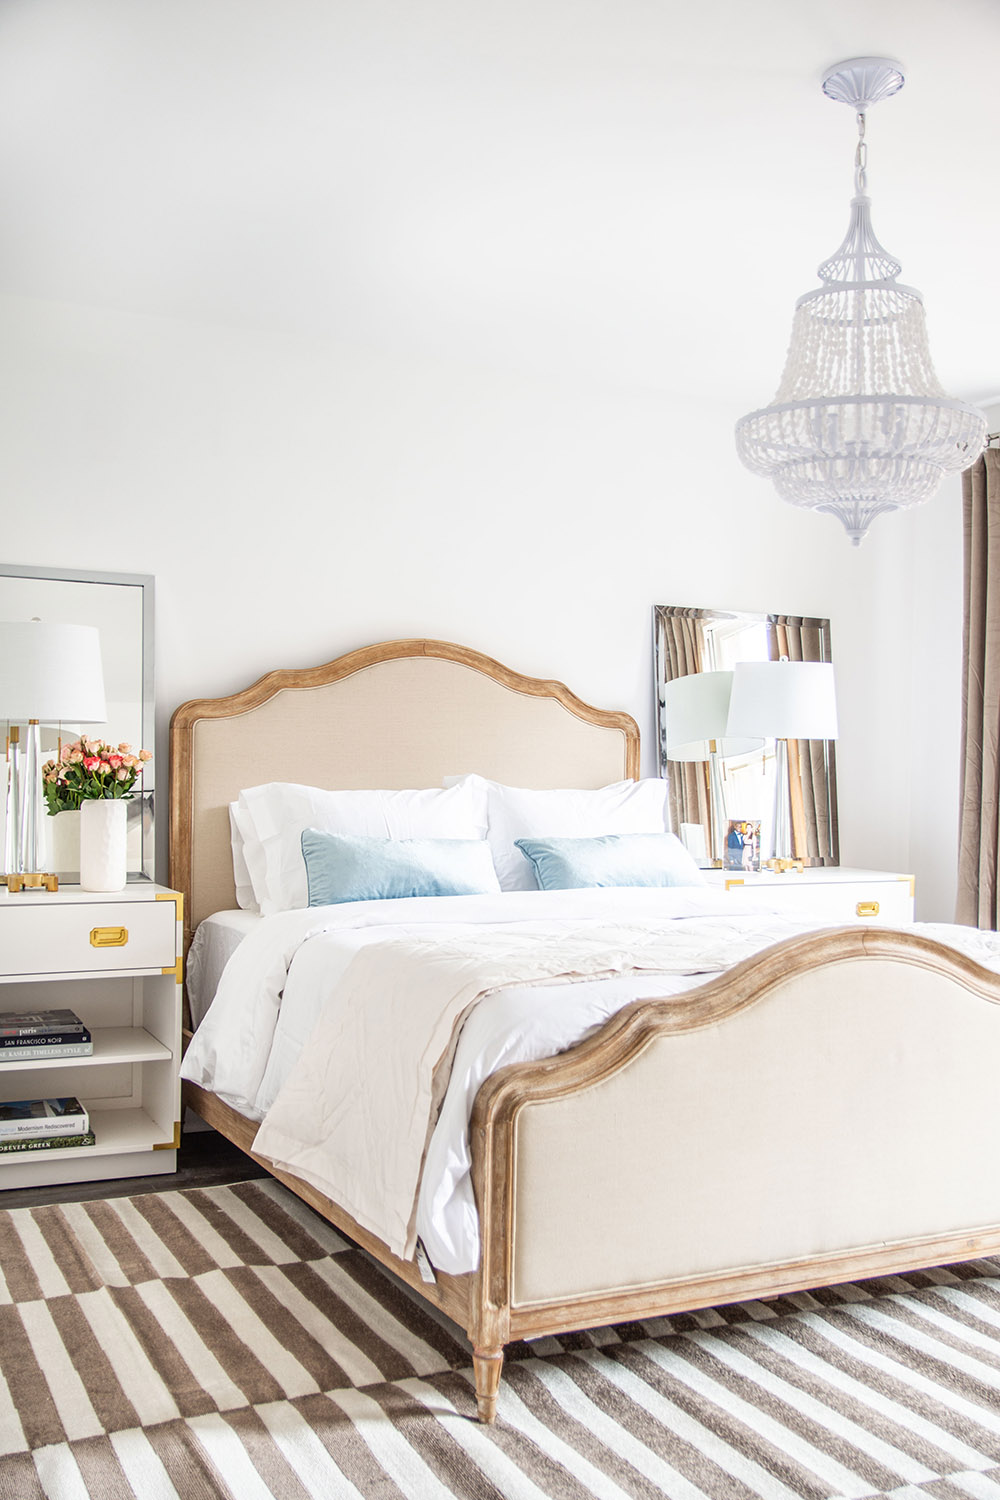 A bedroom decorated with blue, grey and metallic details.